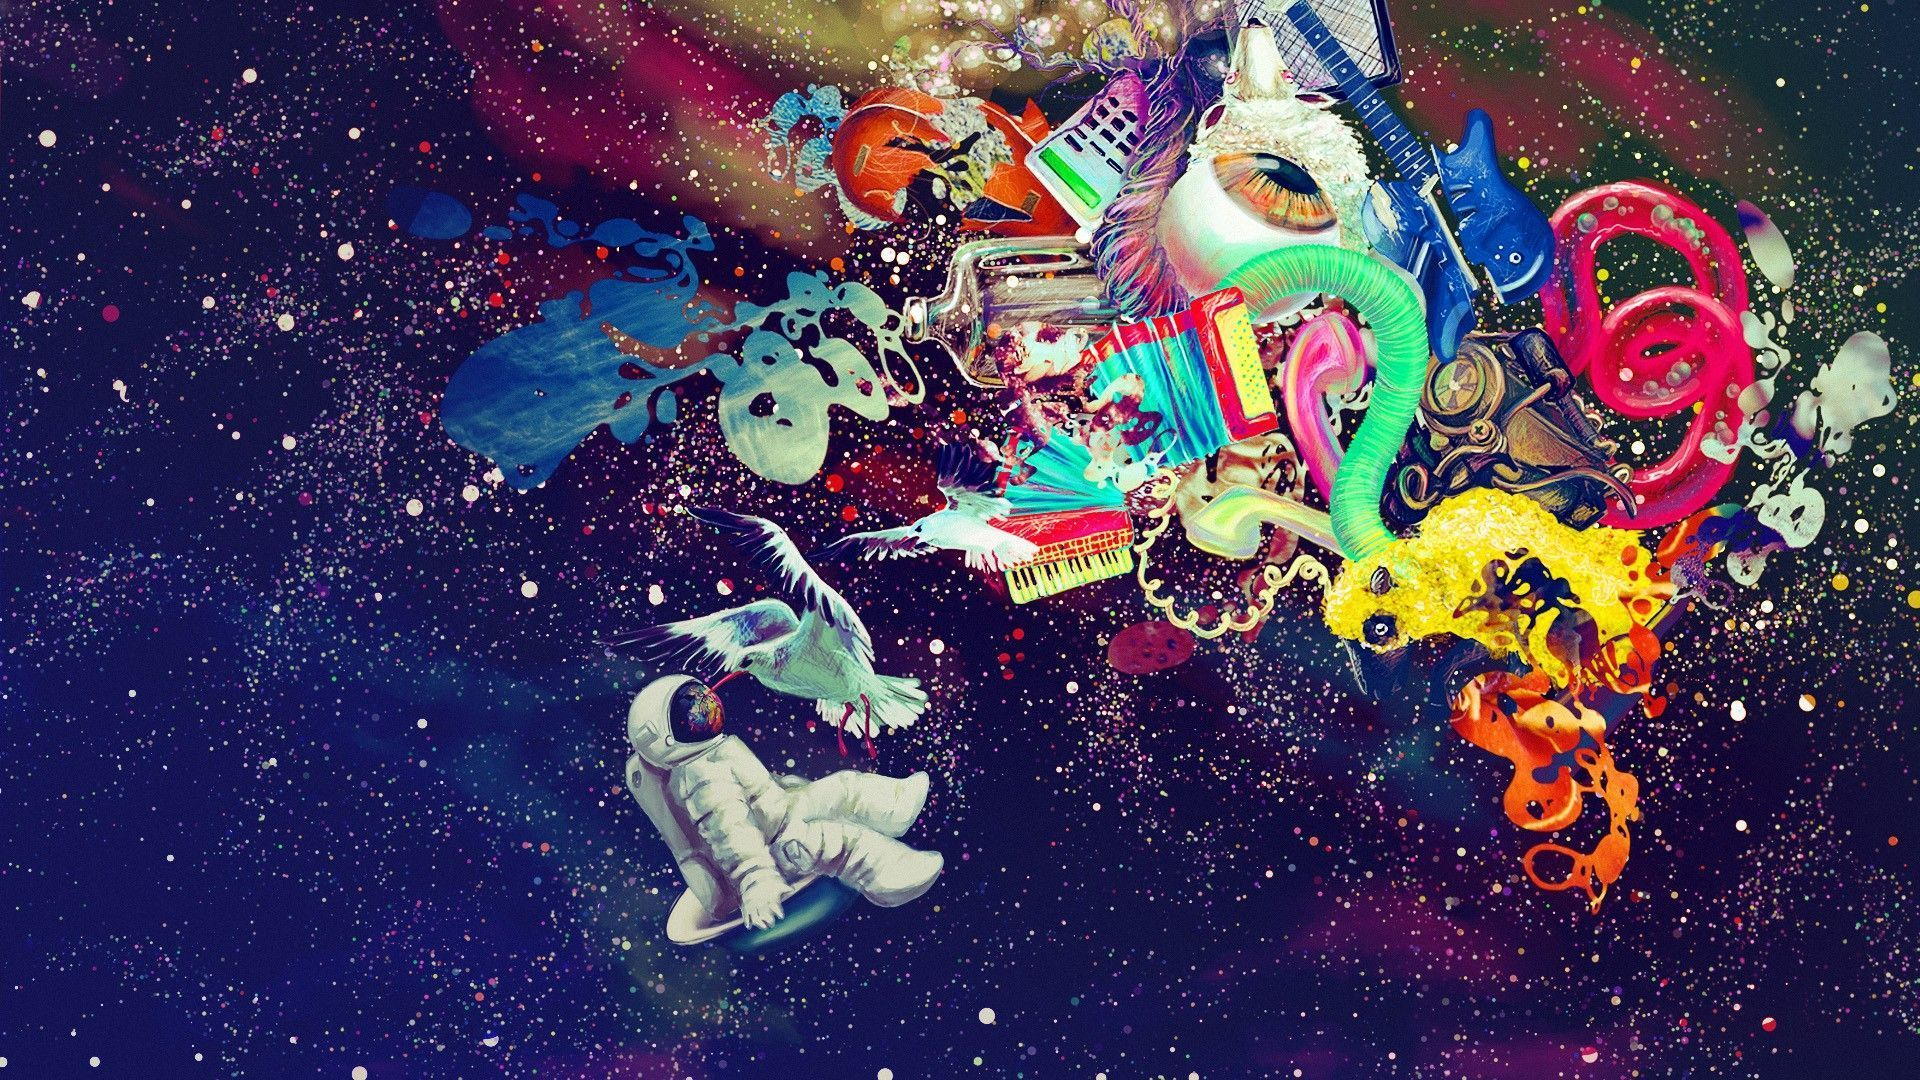 Trippy Astronaut In Space Wallpapers Top Free Trippy Astronaut In Space Backgrounds Wallpaperaccess Trippy Backgrounds Trippy Wallpaper Hippie Wallpaper